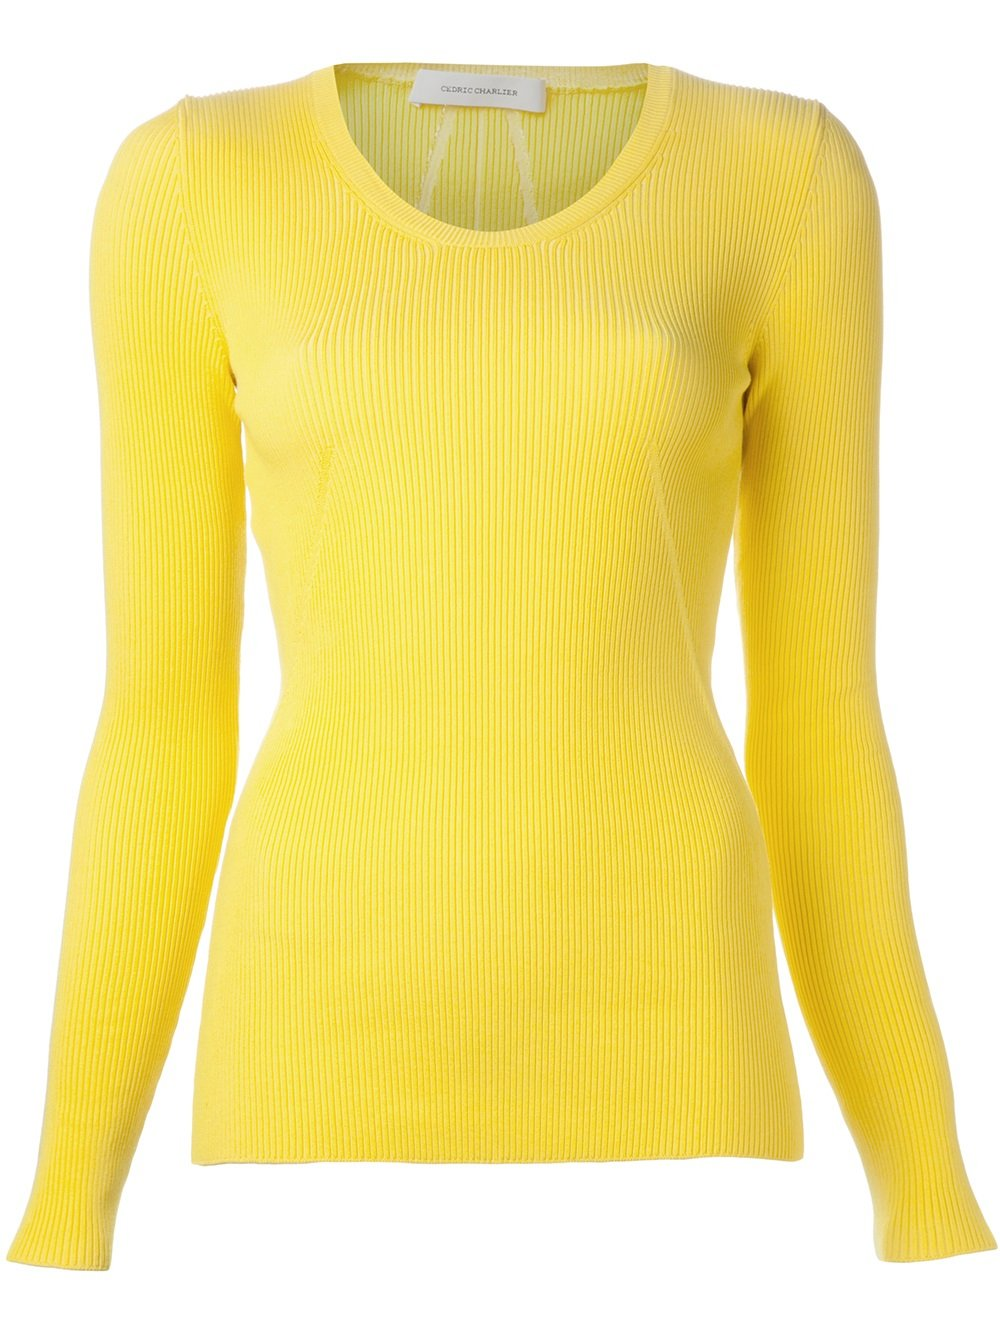 Cedric charlier Ribbed Sweater in Yellow | Lyst